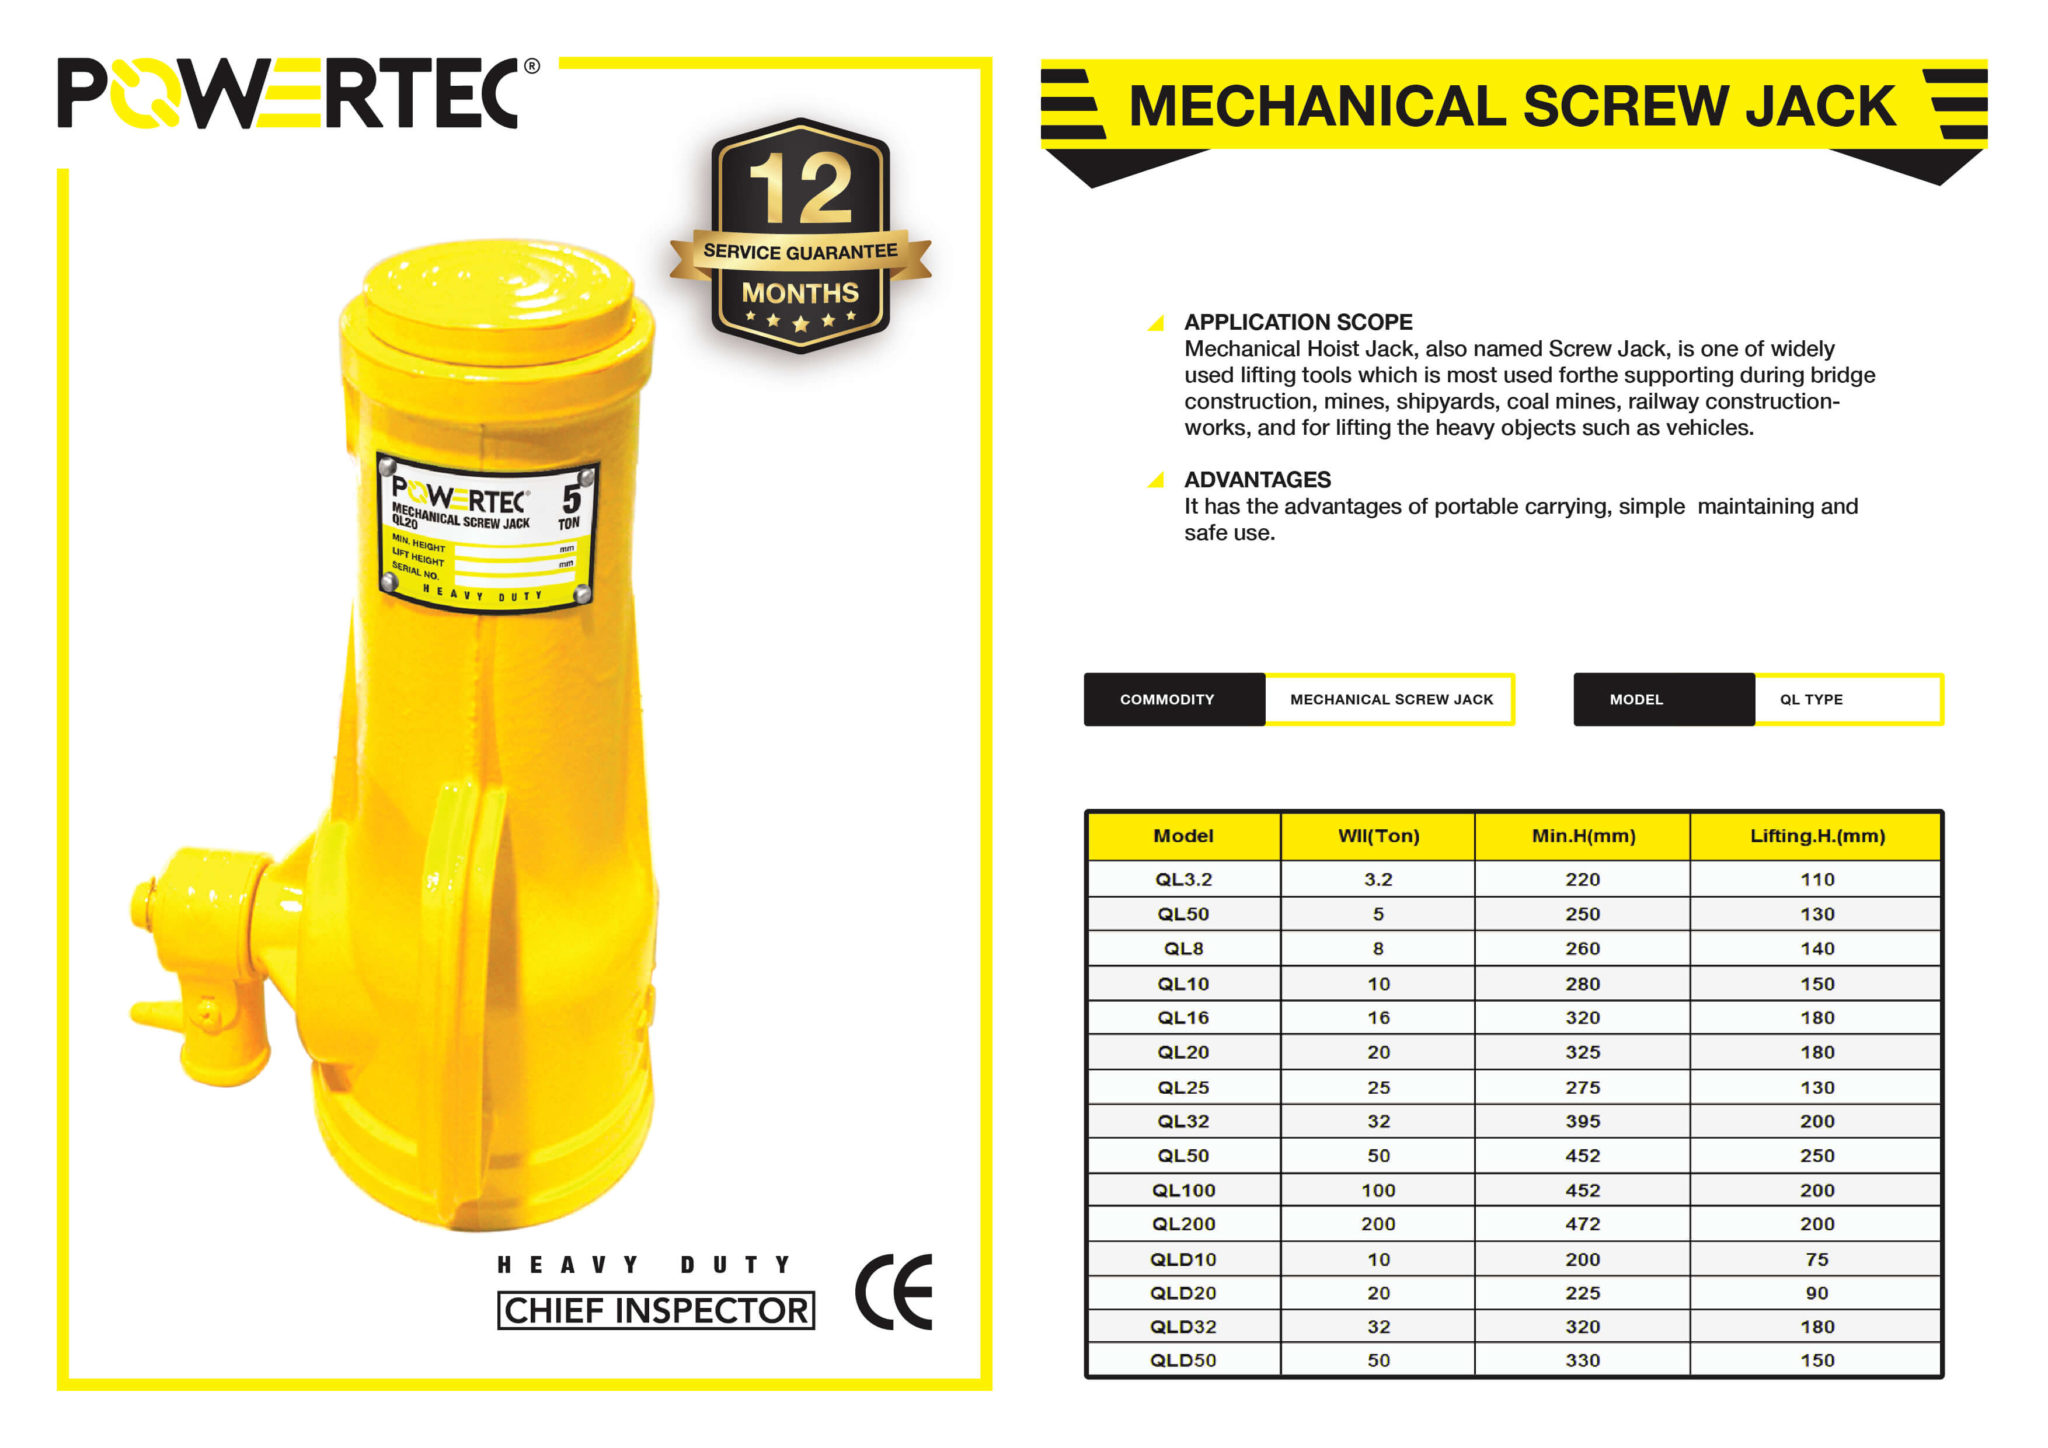 POWERTEC MECHANICAL SCREW JACK BROCHURE